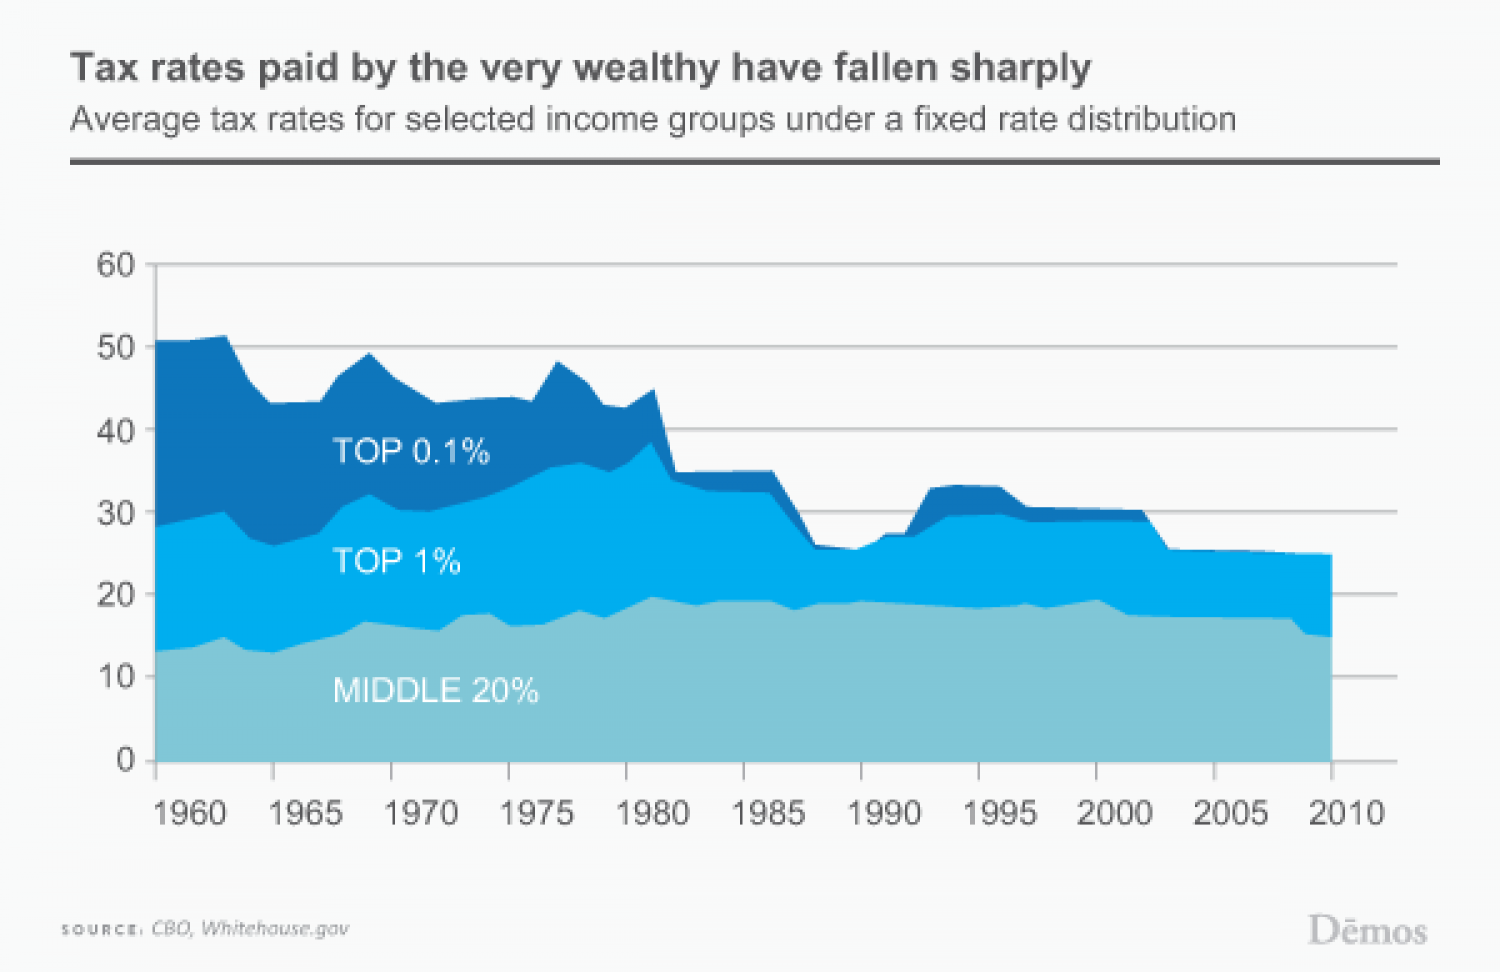 Tax Rates Paid by the Wealthy Have Fallen Sharply Infographic